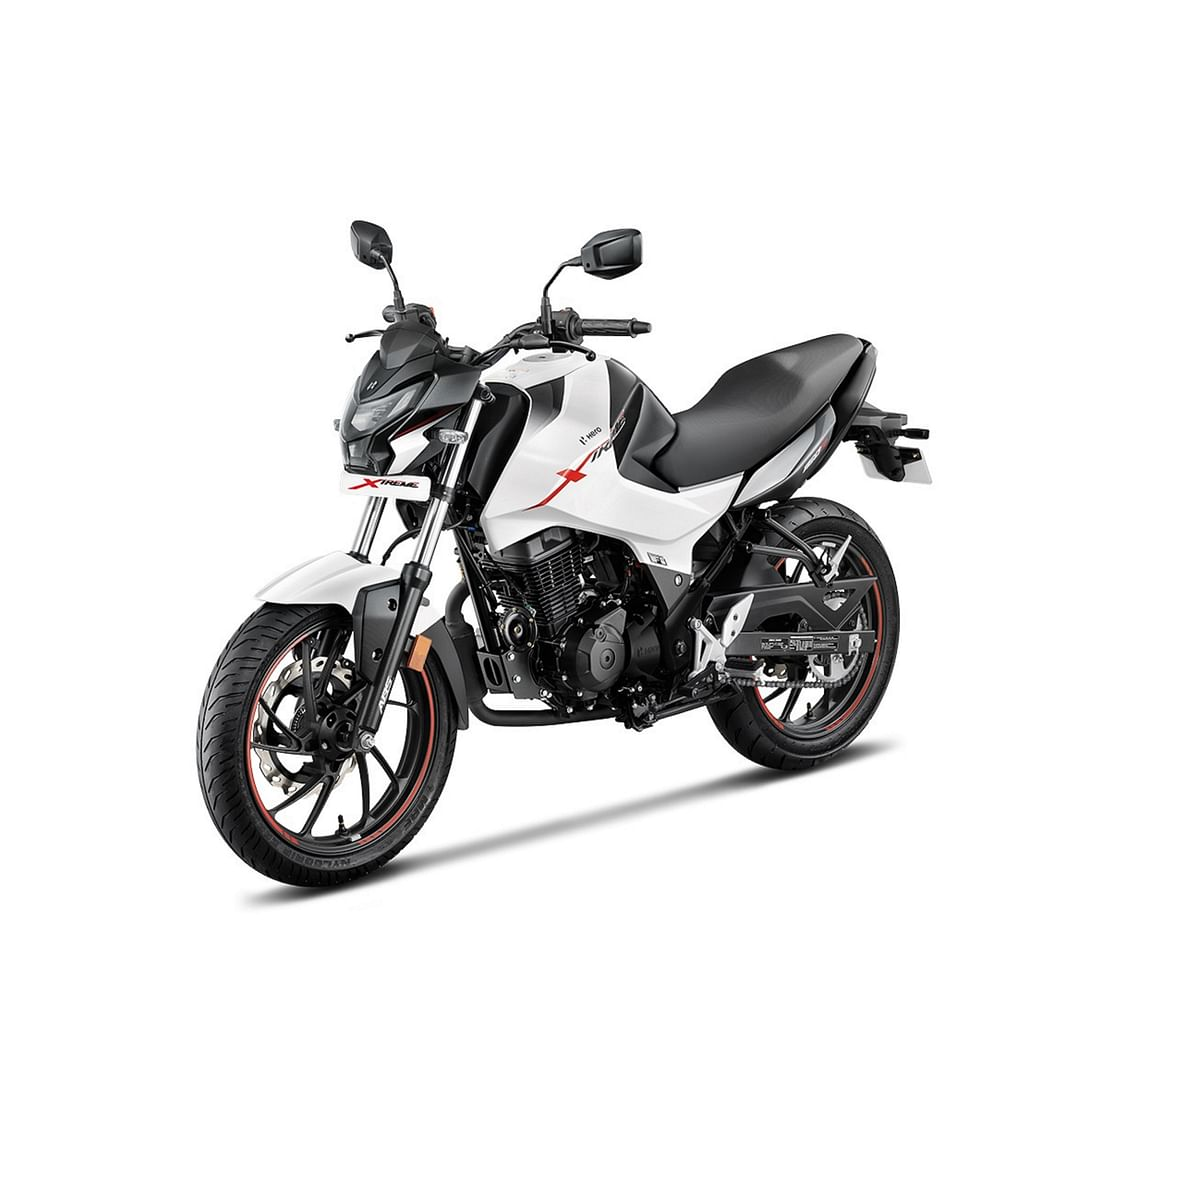 Hero Motocorp launches the Xtreme 160R at Rs 99,950